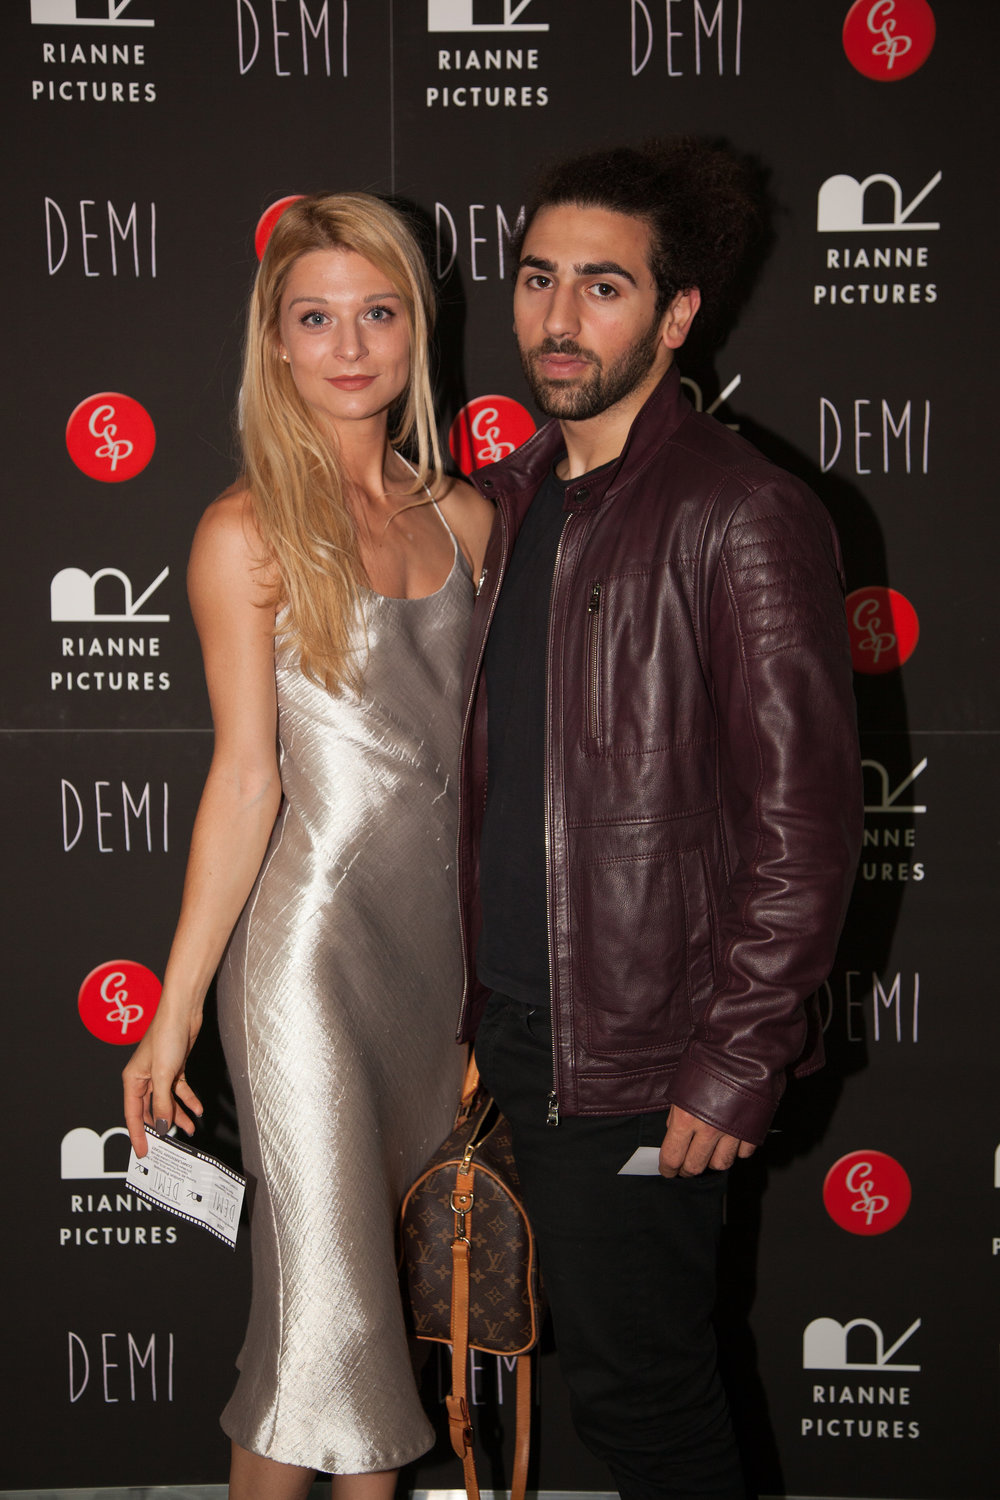 Lydia Lakemoore with her partner Arman Mantella.